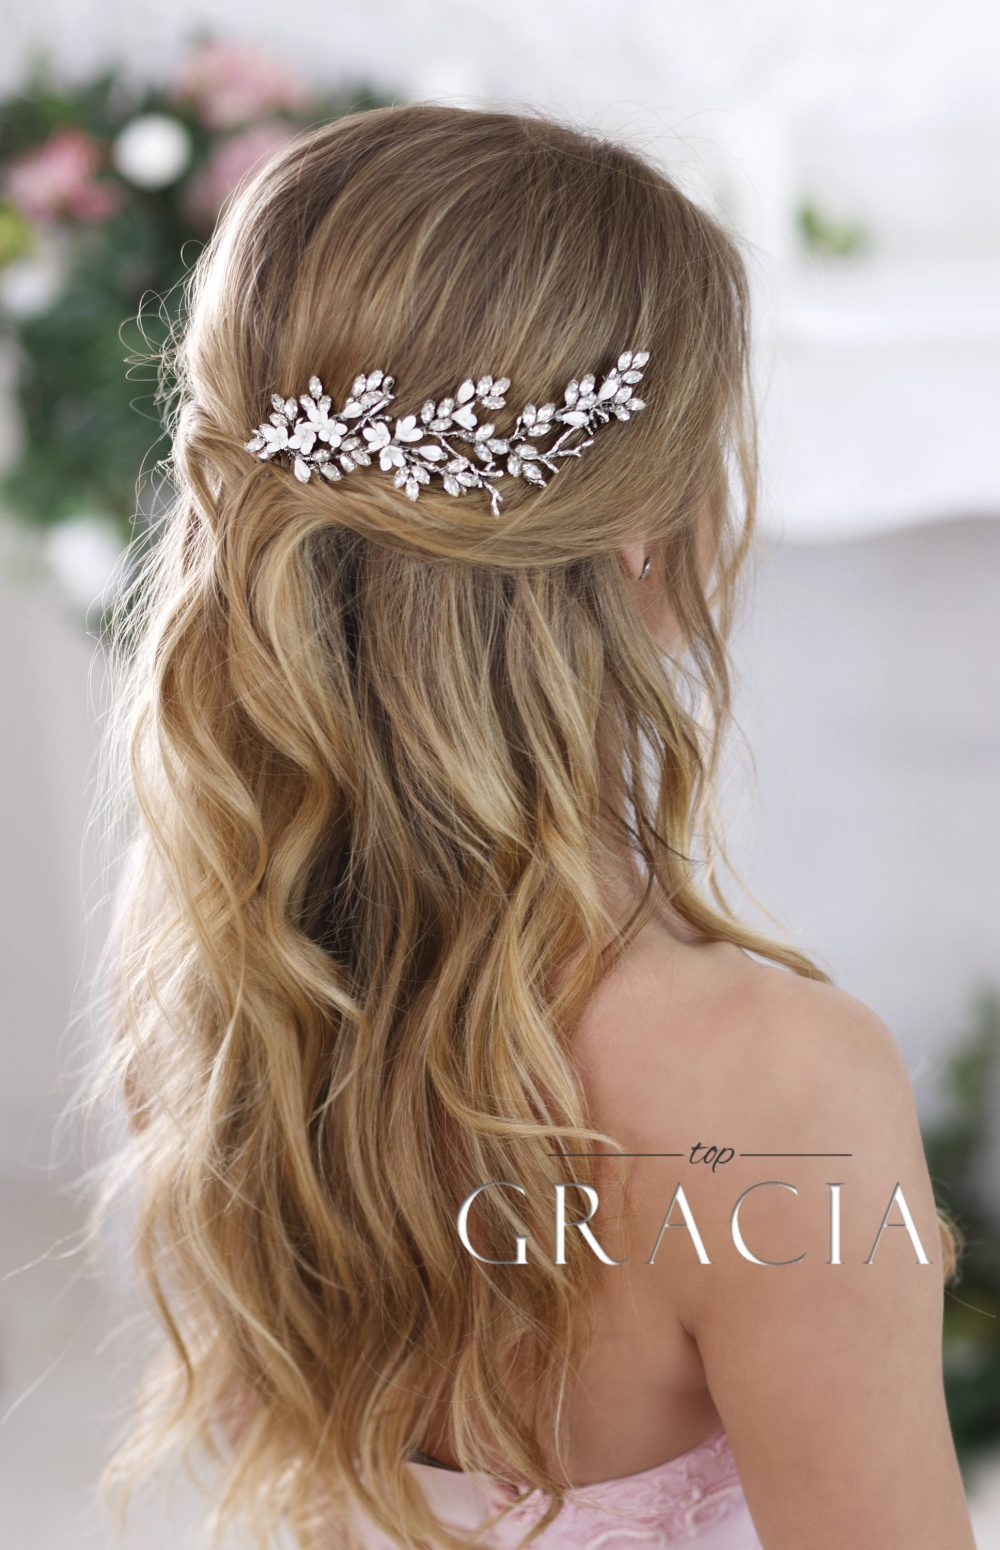 Bridal Hairpiece Crystal Hair Comb Wedding Headpiece Piece Floral Hair Comb Flower Rhinestone